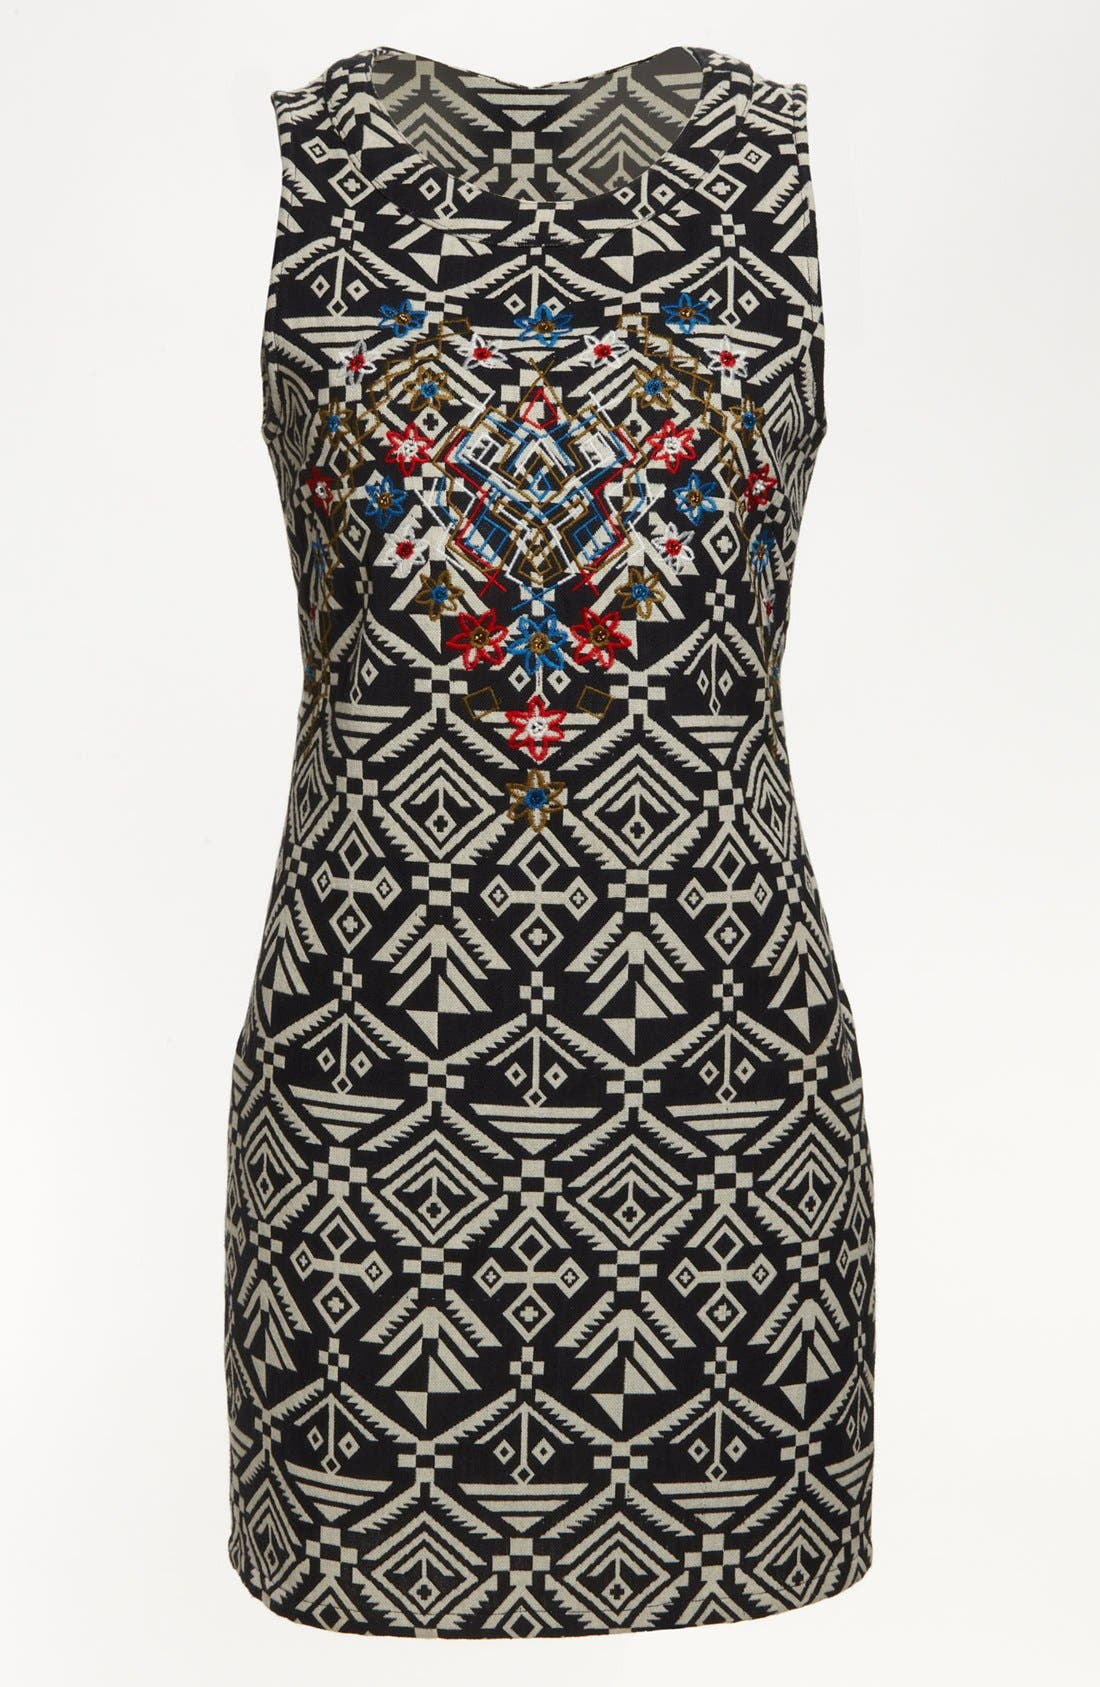 Main Image - ASTR Tribal Print Body-Con Dress